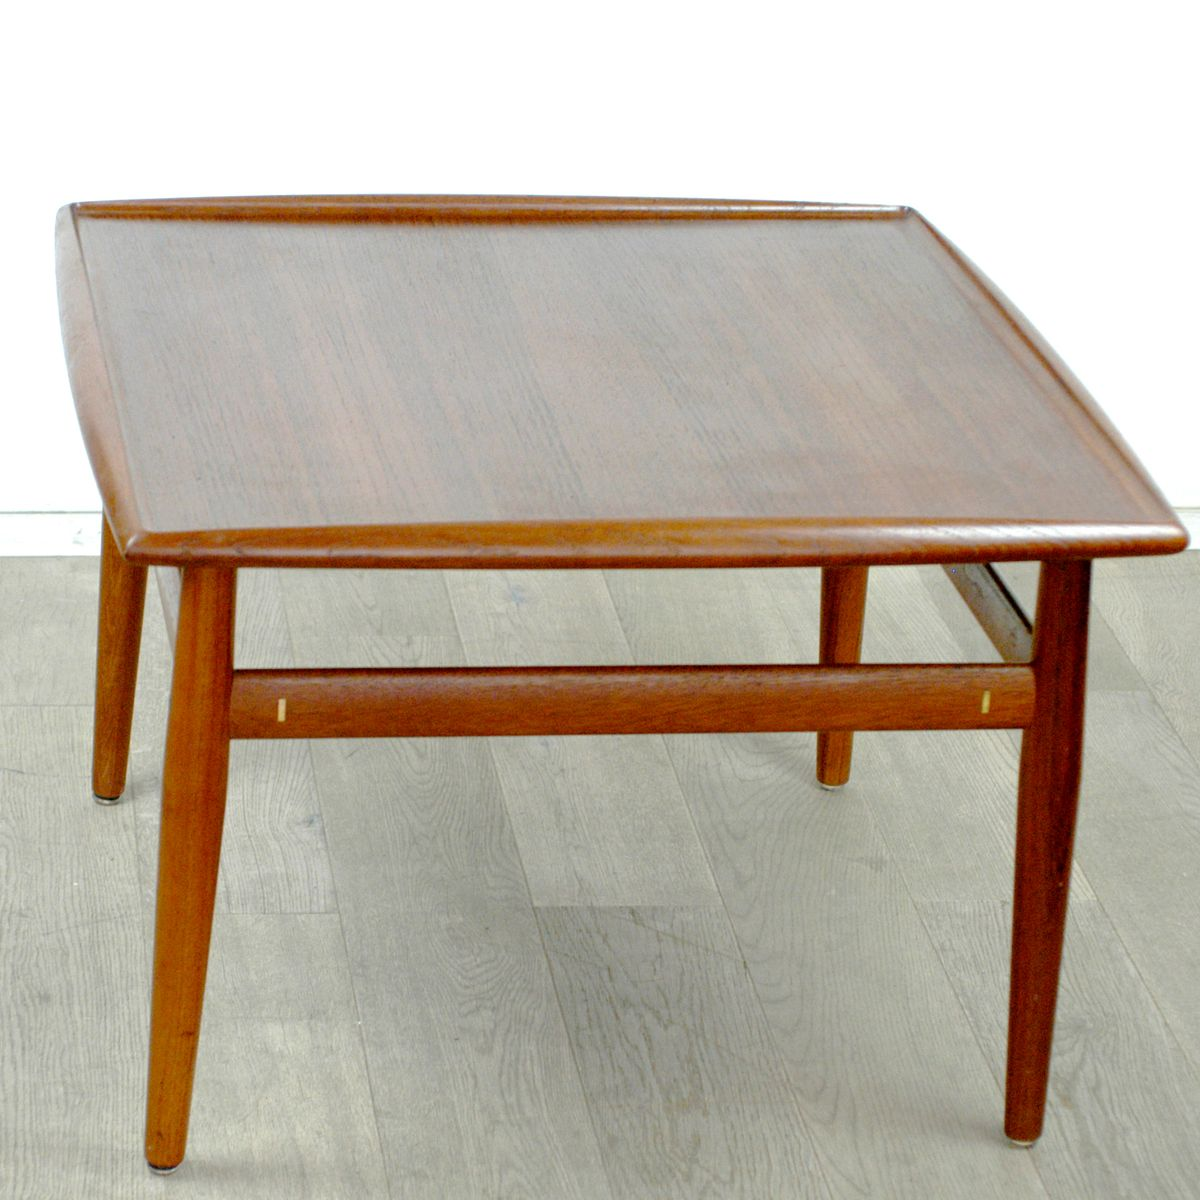 Danish Teak Coffee Table By Grete Jalk For France S N 1960s For Sale At Pamono